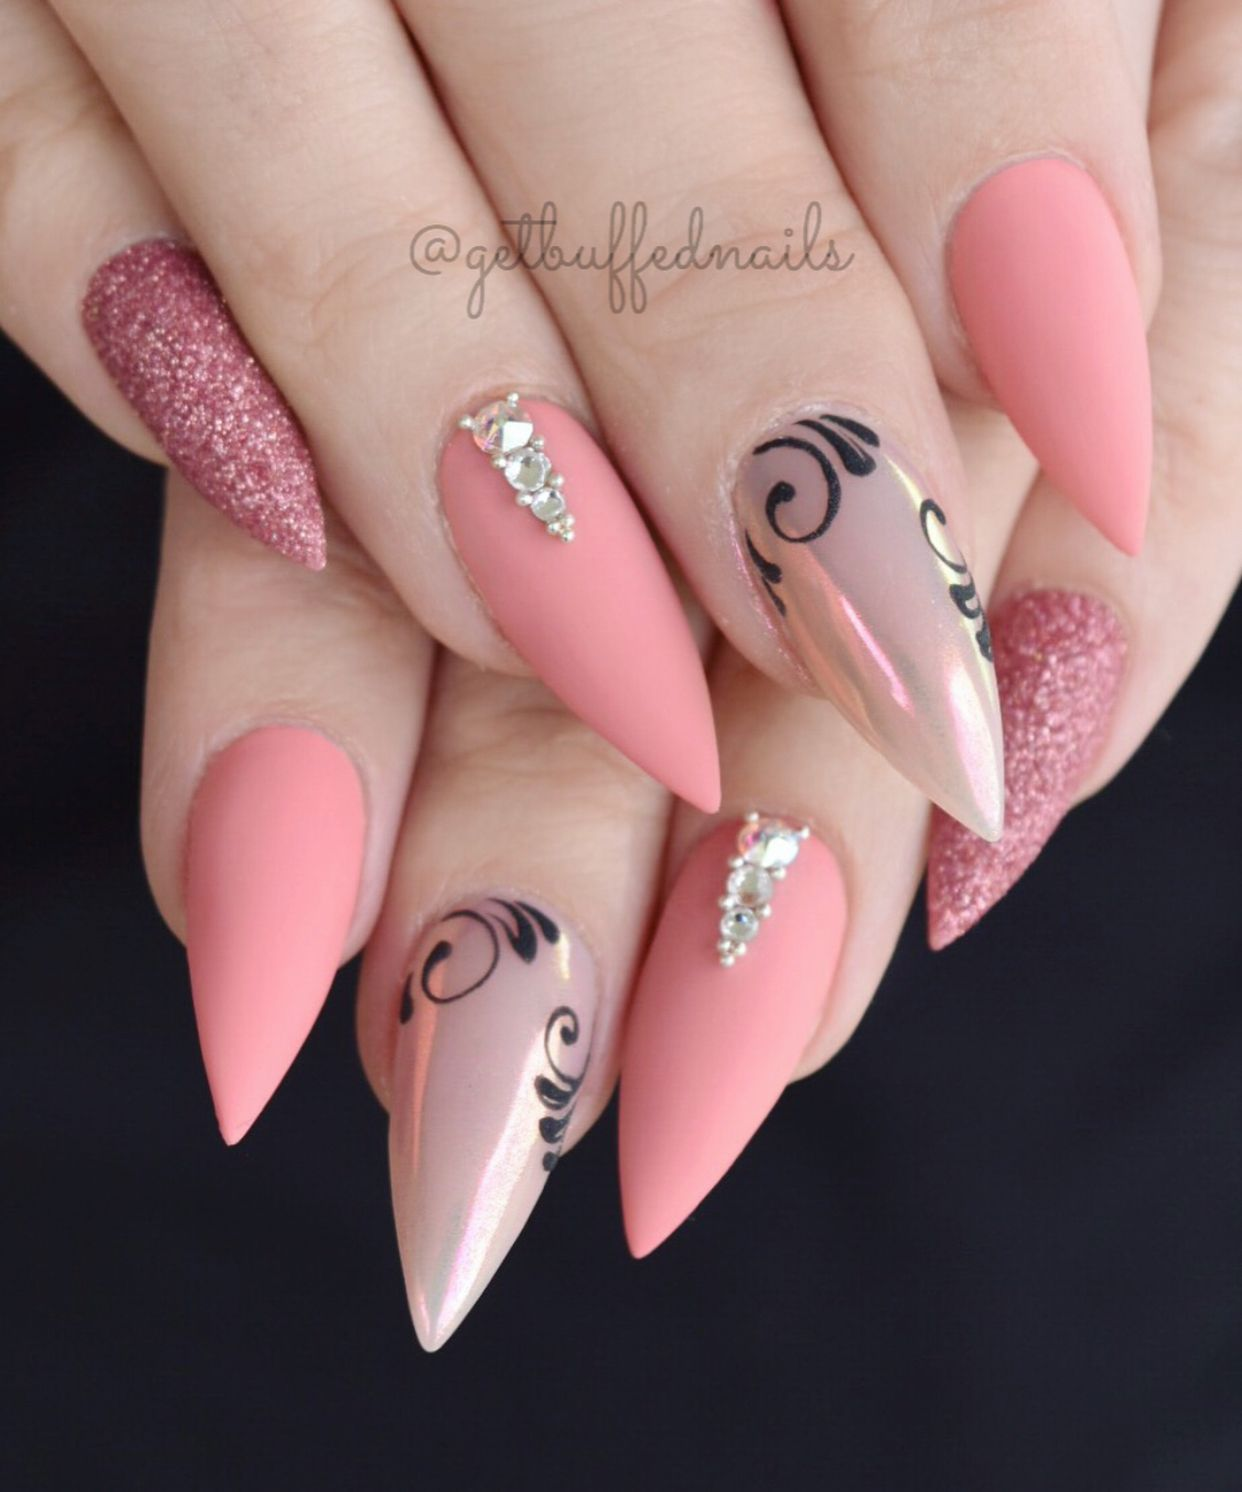 1001+ ideas and designs for unique ballerina nails in 2020